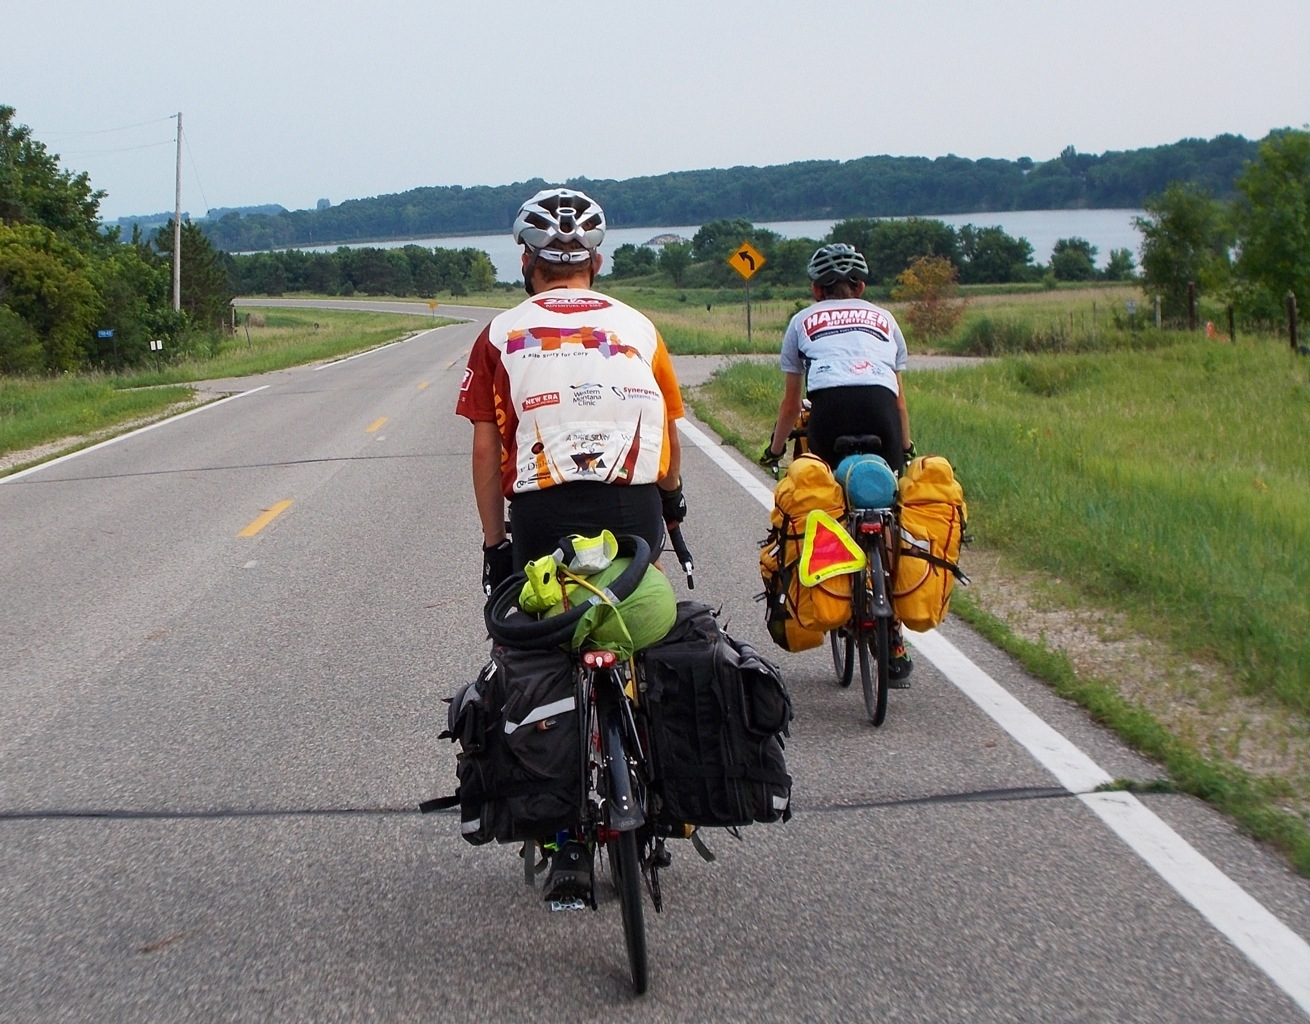 Pedal Fergus Falls, a chapter of the Bicycle Alliance of Minnesota, is a bicycle and pedestrian education and advocacy group for Fergus Falls, Minnesota. We are dedicated to making biking and walking the safe, easy and fun choice in Fergus Falls.